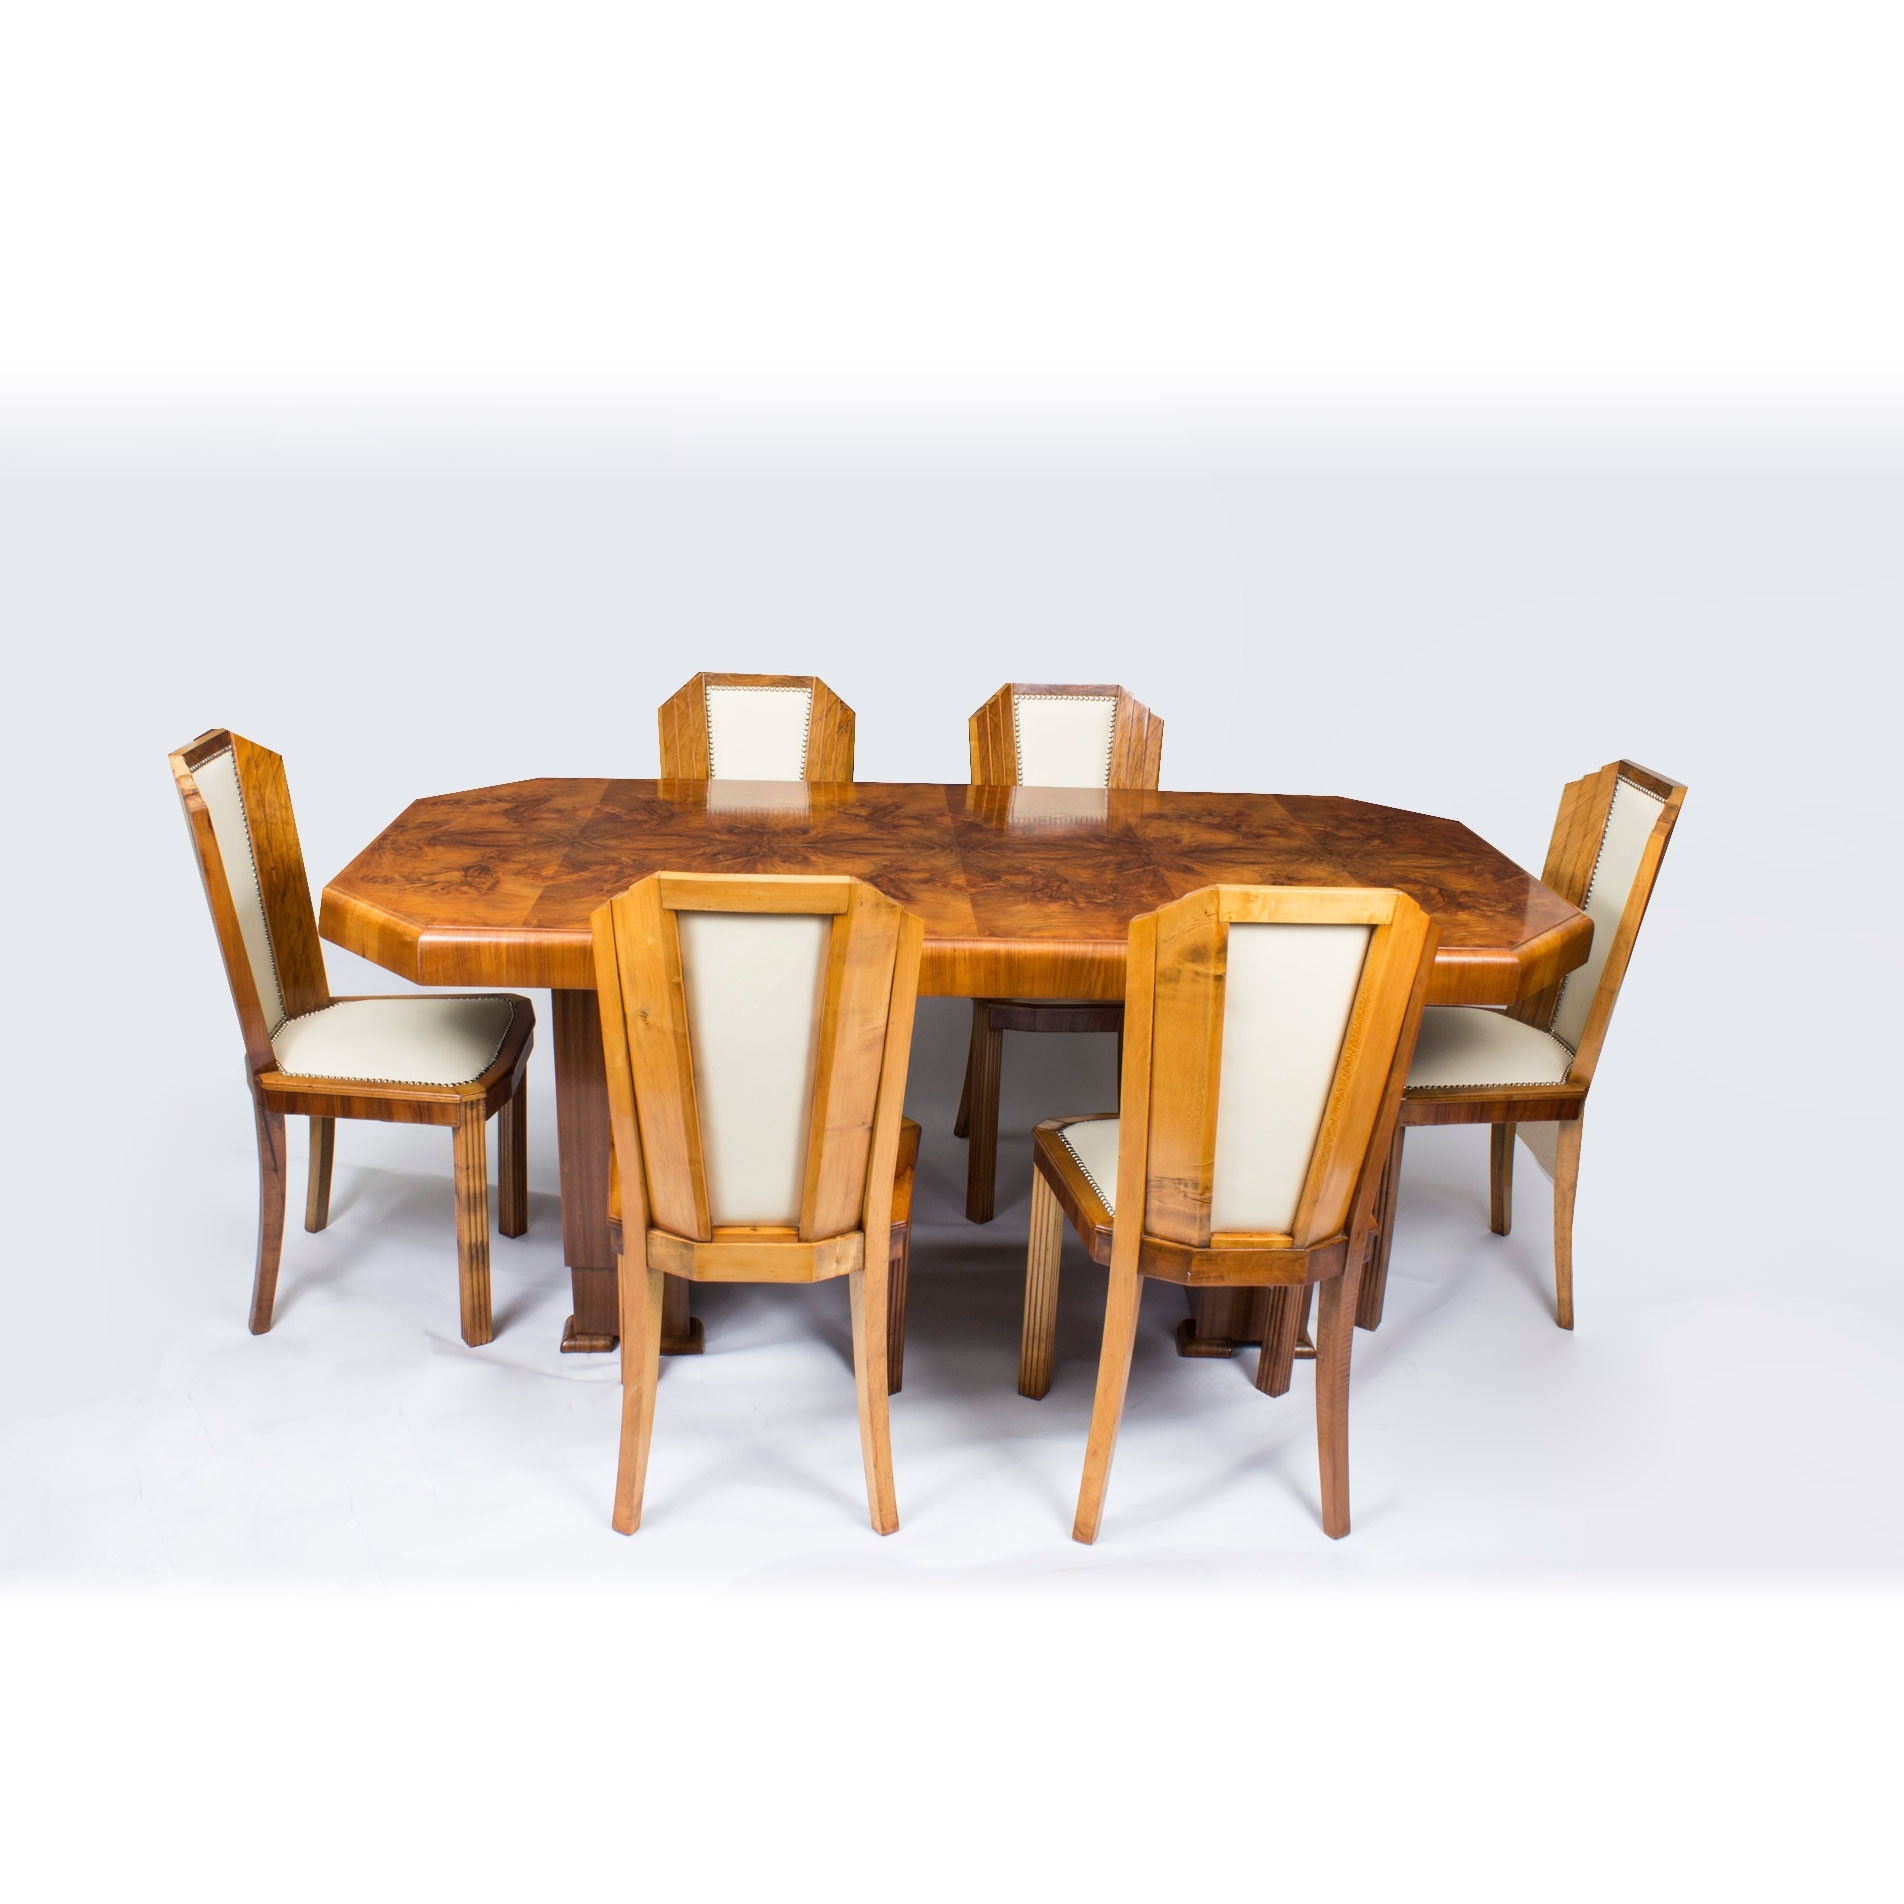 1930S Art Deco Burr Walnut Dining Table 6 Chairs (C (View 1 of 25)